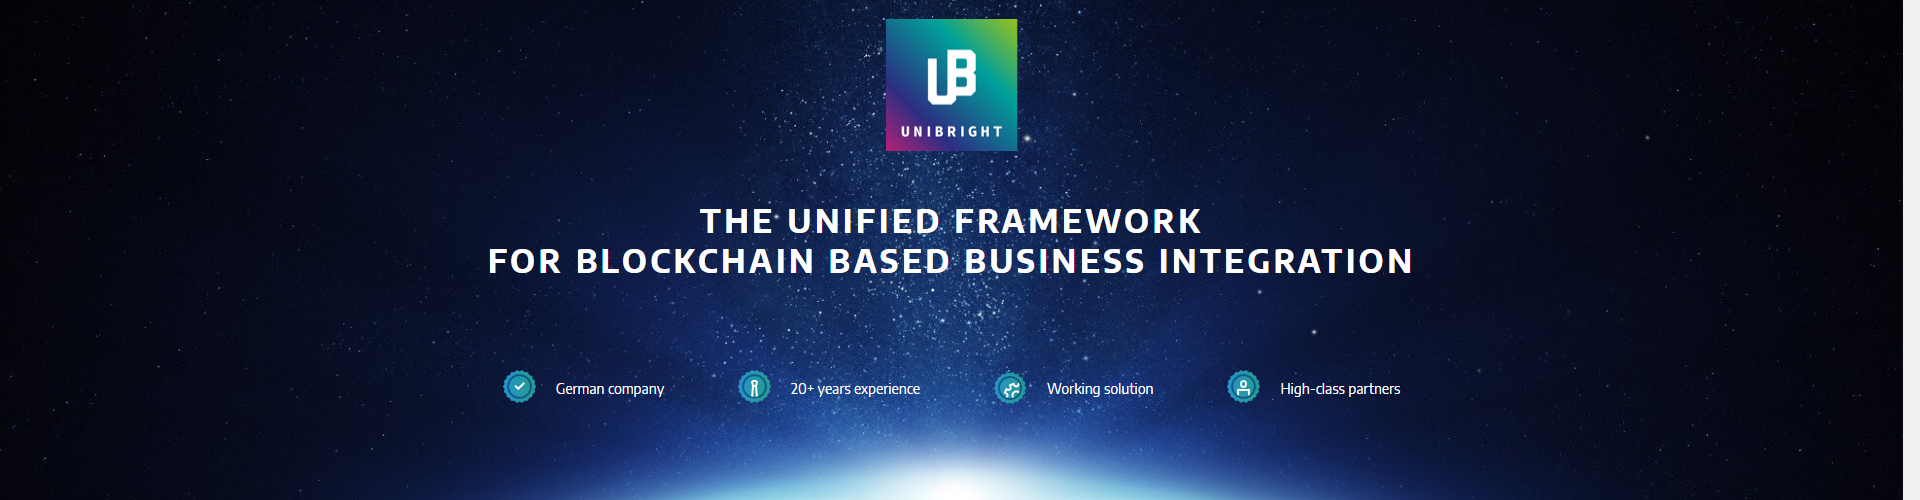 Unibright - Blockchain Integrations for Enterprise